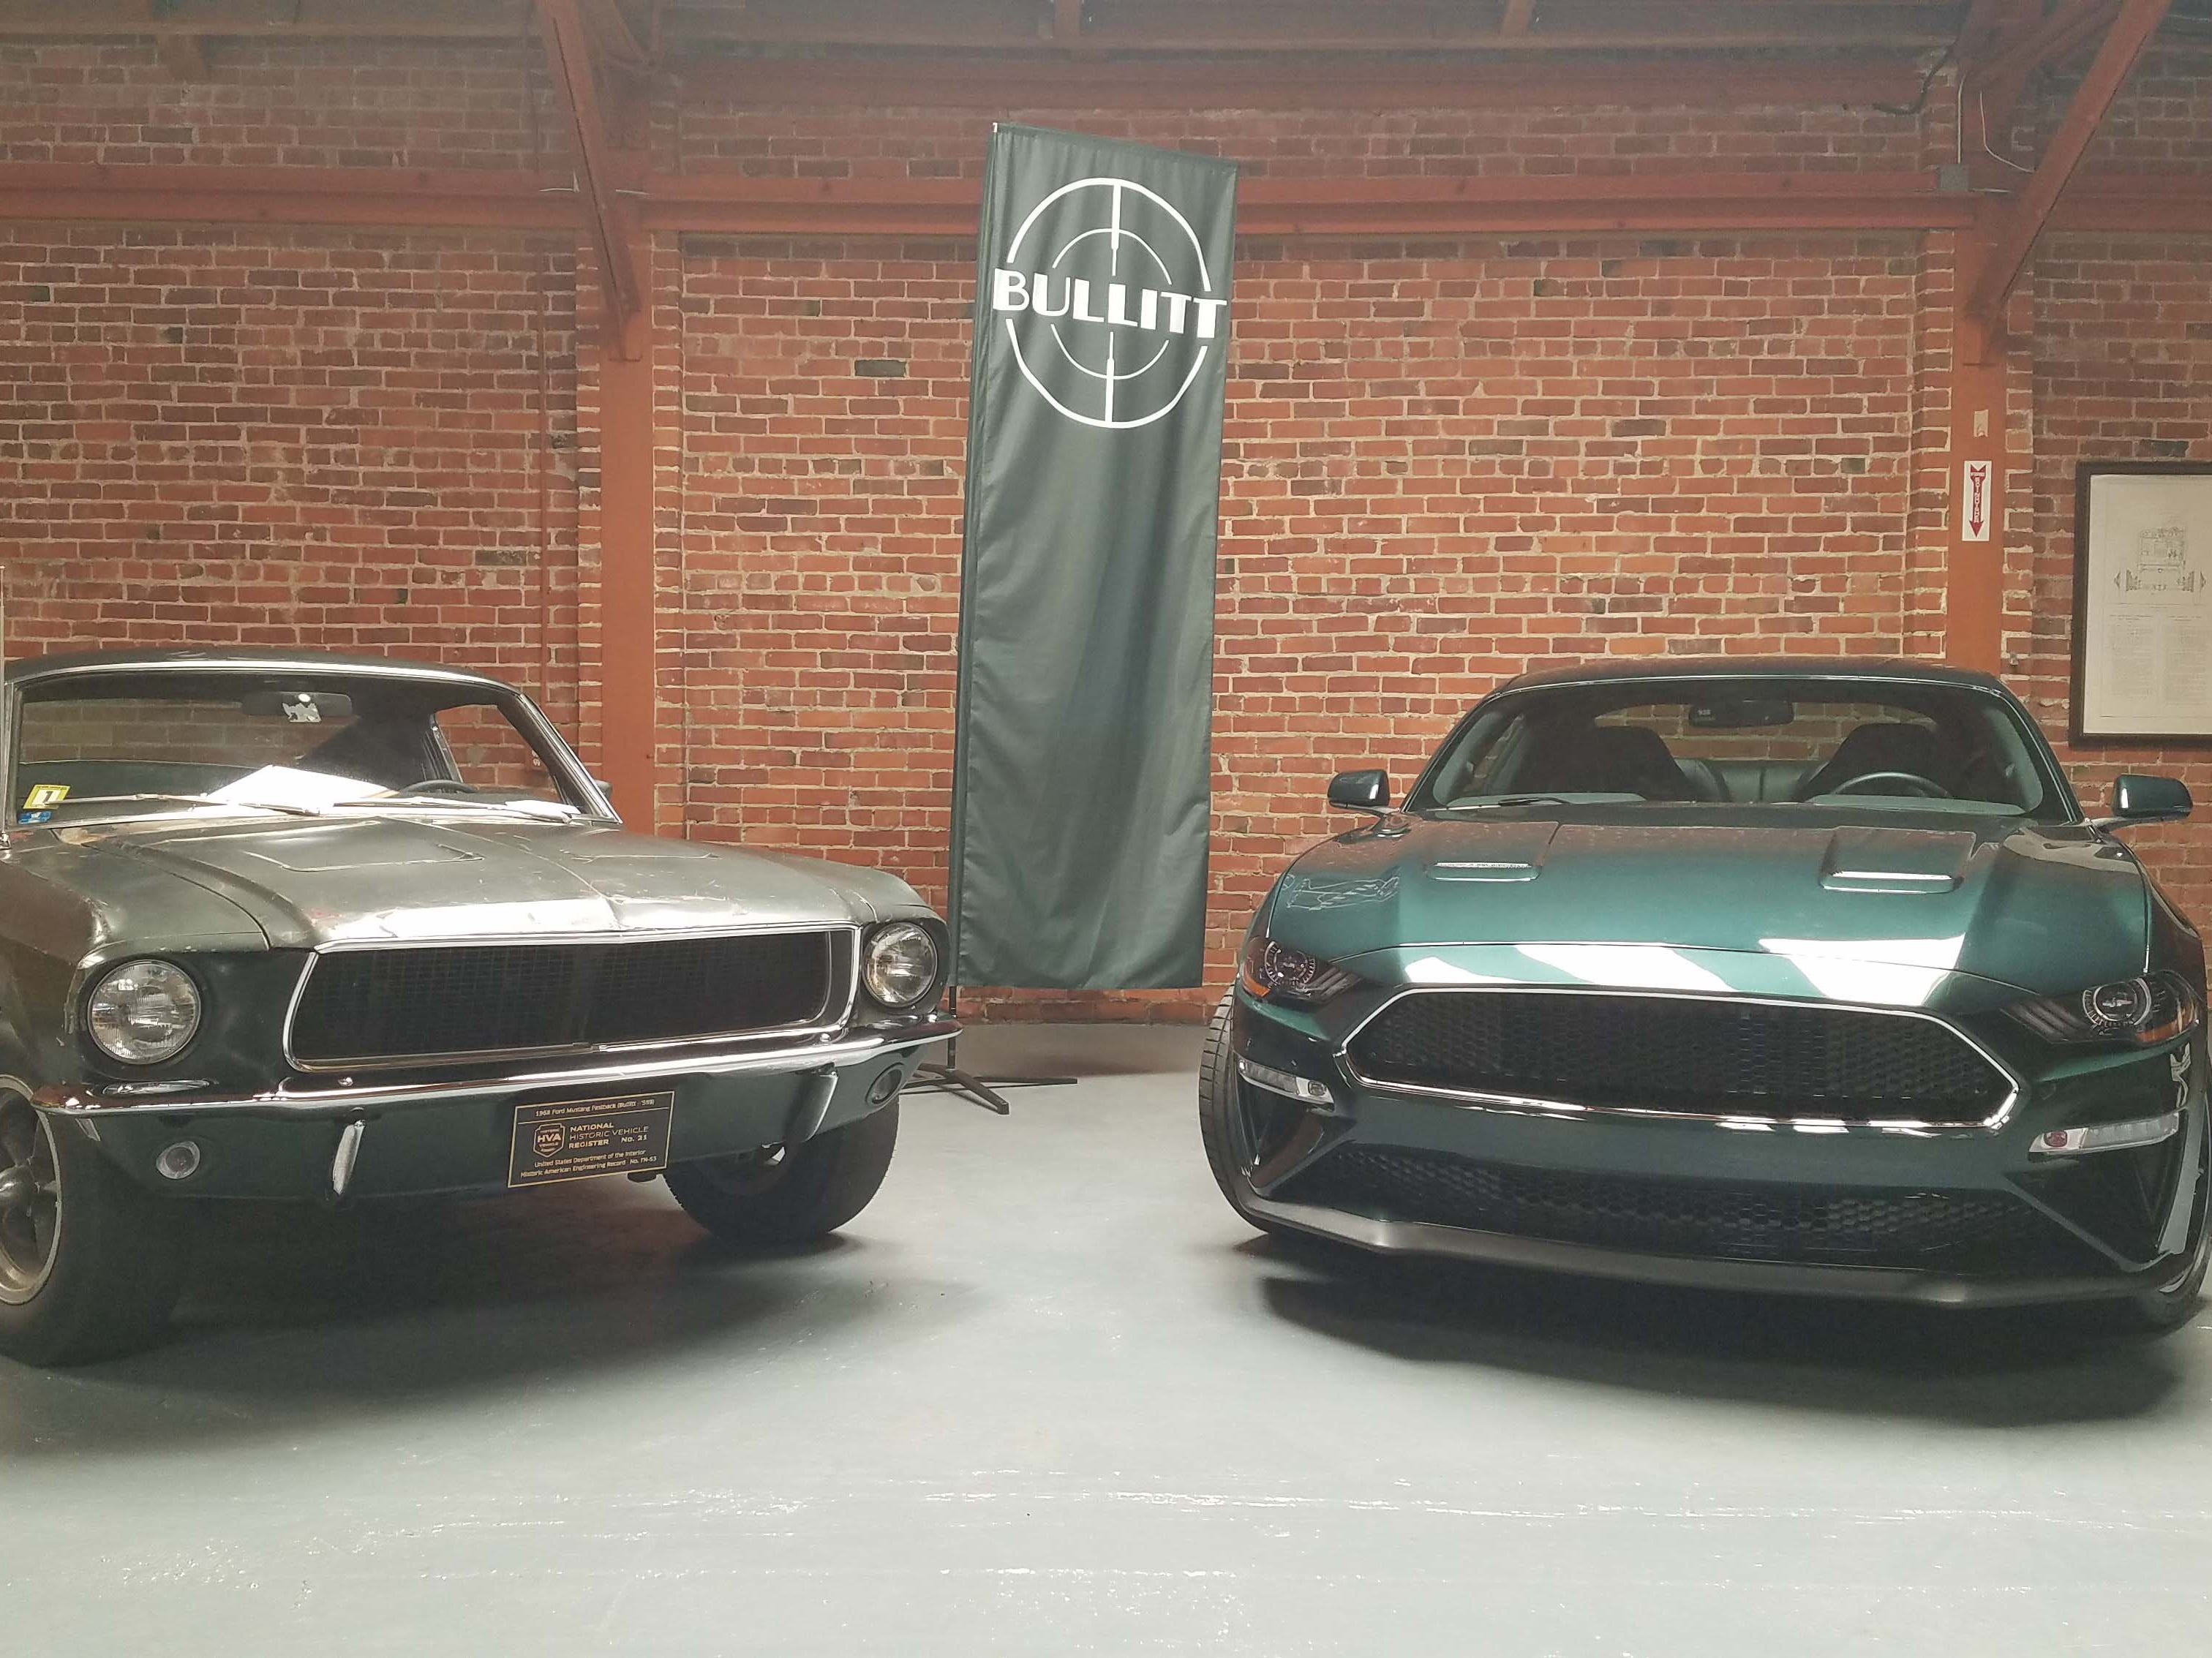 """Father and son. The original, 1968 Ford Mustang Fastback, left, driven by Steve McQueen in the classic car chase movie, """"Bullitt,"""" with the modern, 2019 Ford Mustang Bullitt. The family resemblance is unmistakable."""